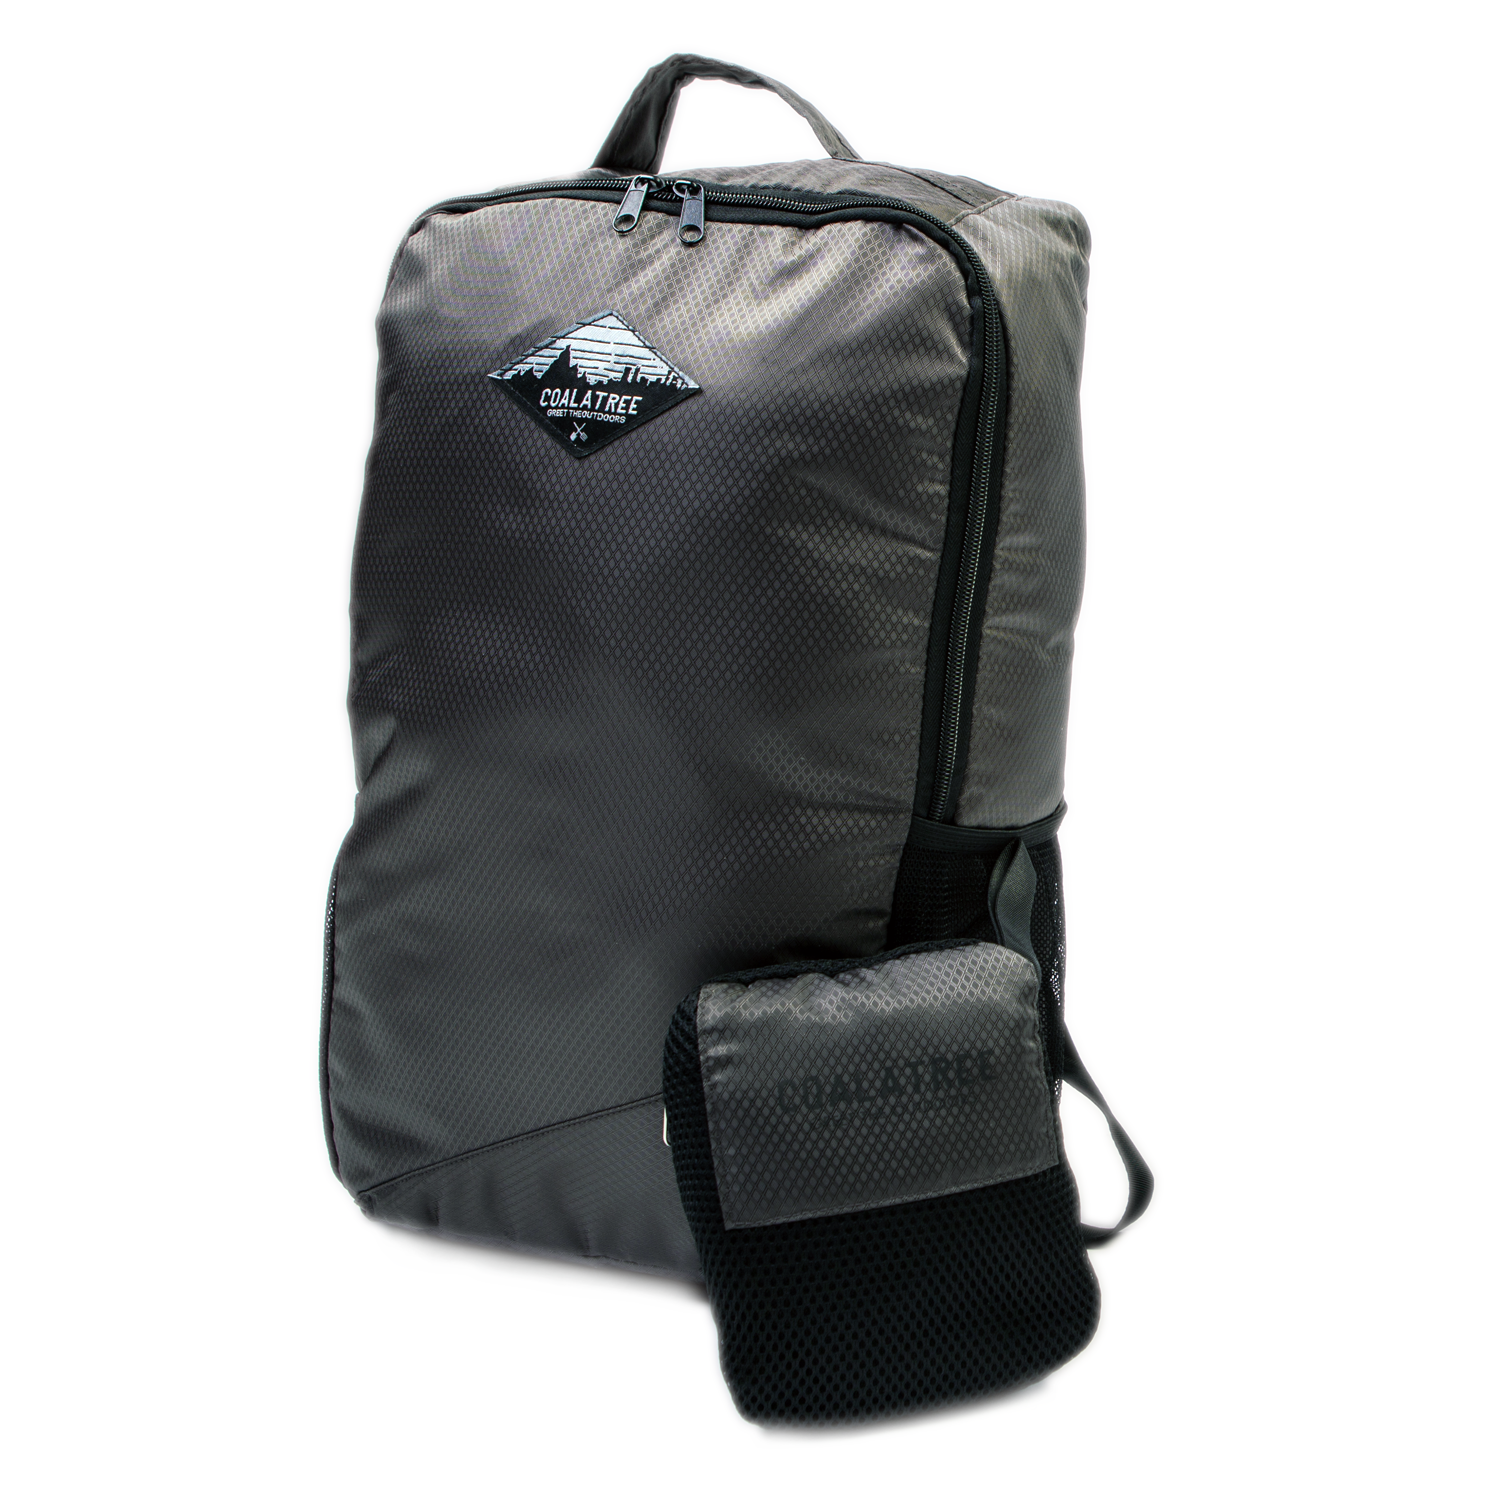 NOMAD PACKABLE BACKPACK By Coalatree